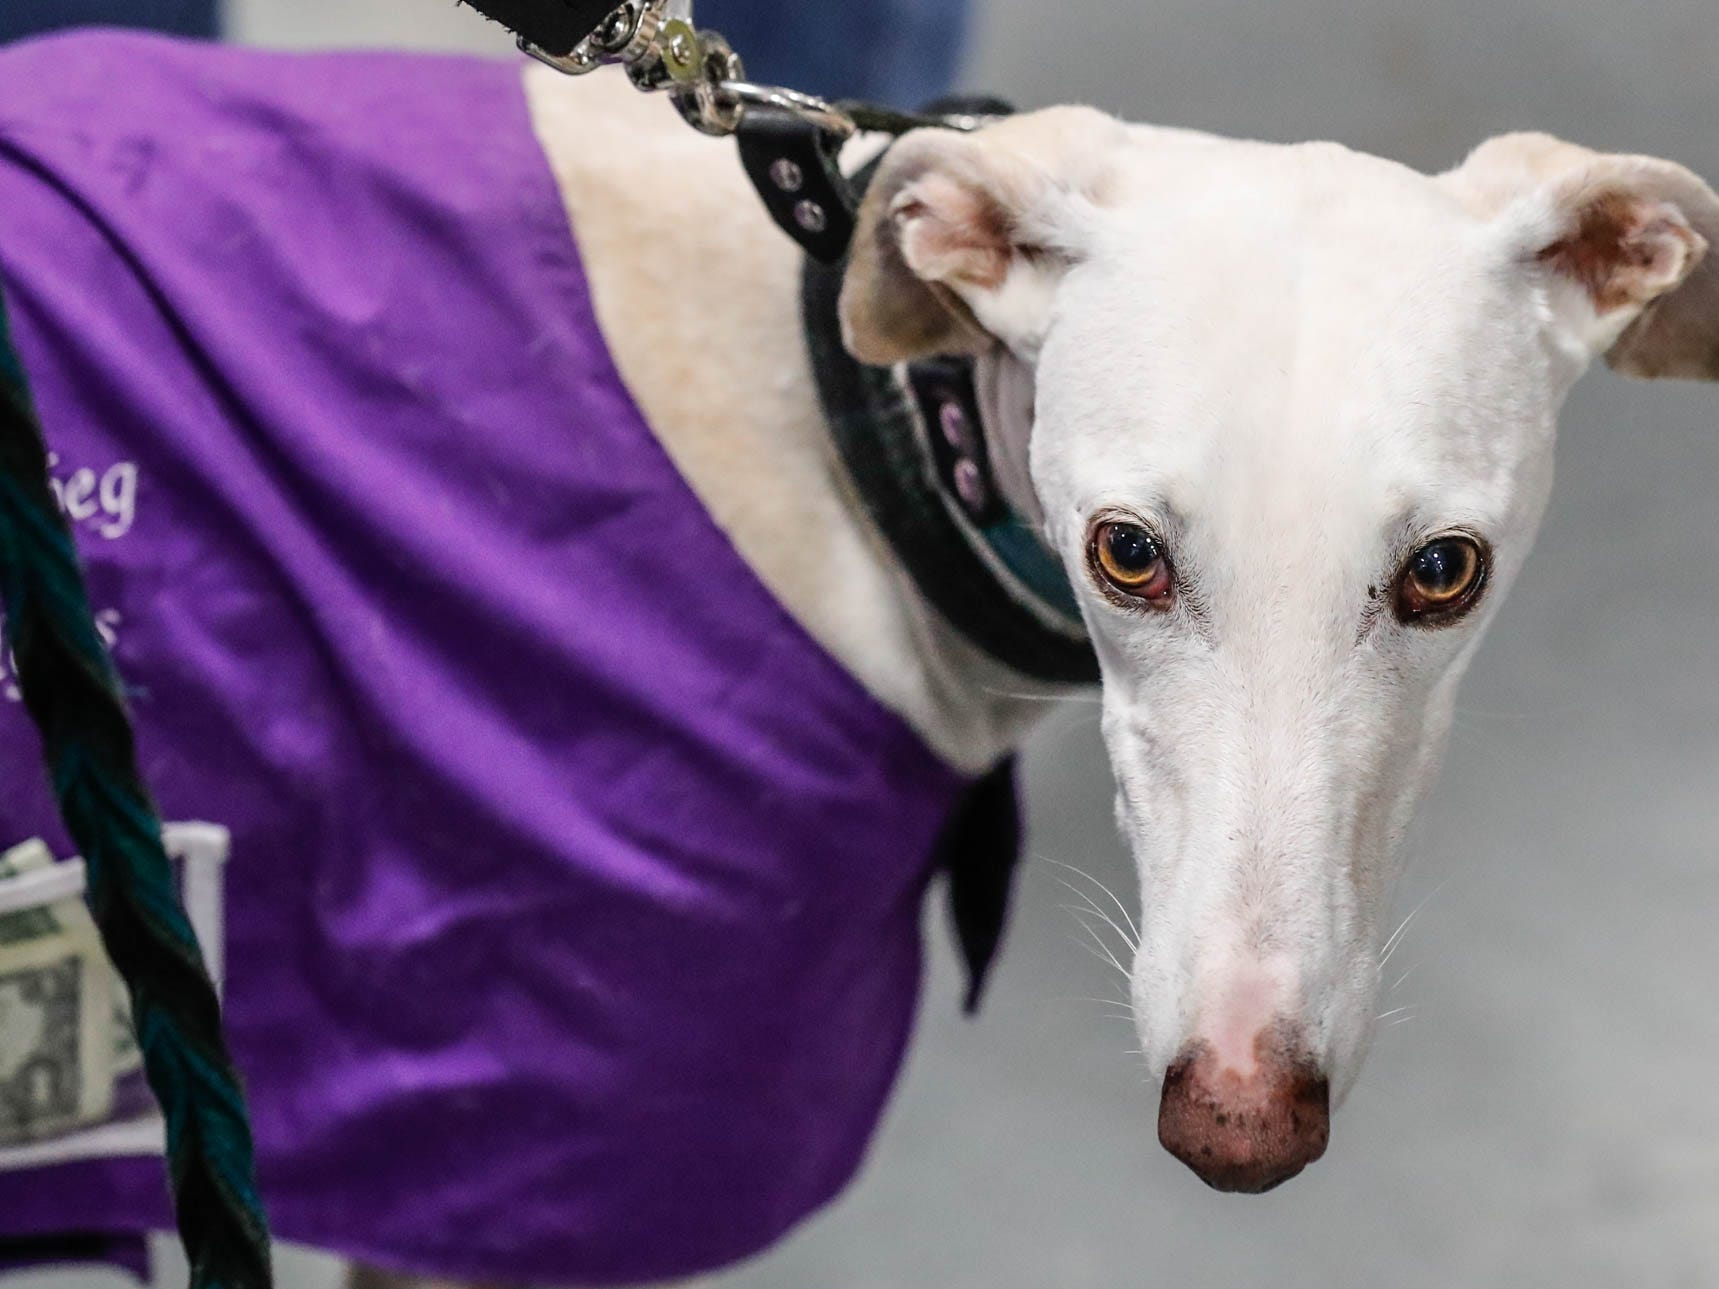 Sophia Lauren, a Spanish greyhound, meets and greets guests at the Royal Sighthound Connection booth at the Great Indy Pet Expo, held at the Indiana State Fairgrounds on Sat. Nov. 10, 2018. Royal Sighthound Connection rescues Spanish greyhounds from overseas and helps to find them forever homes in the U.S.A.